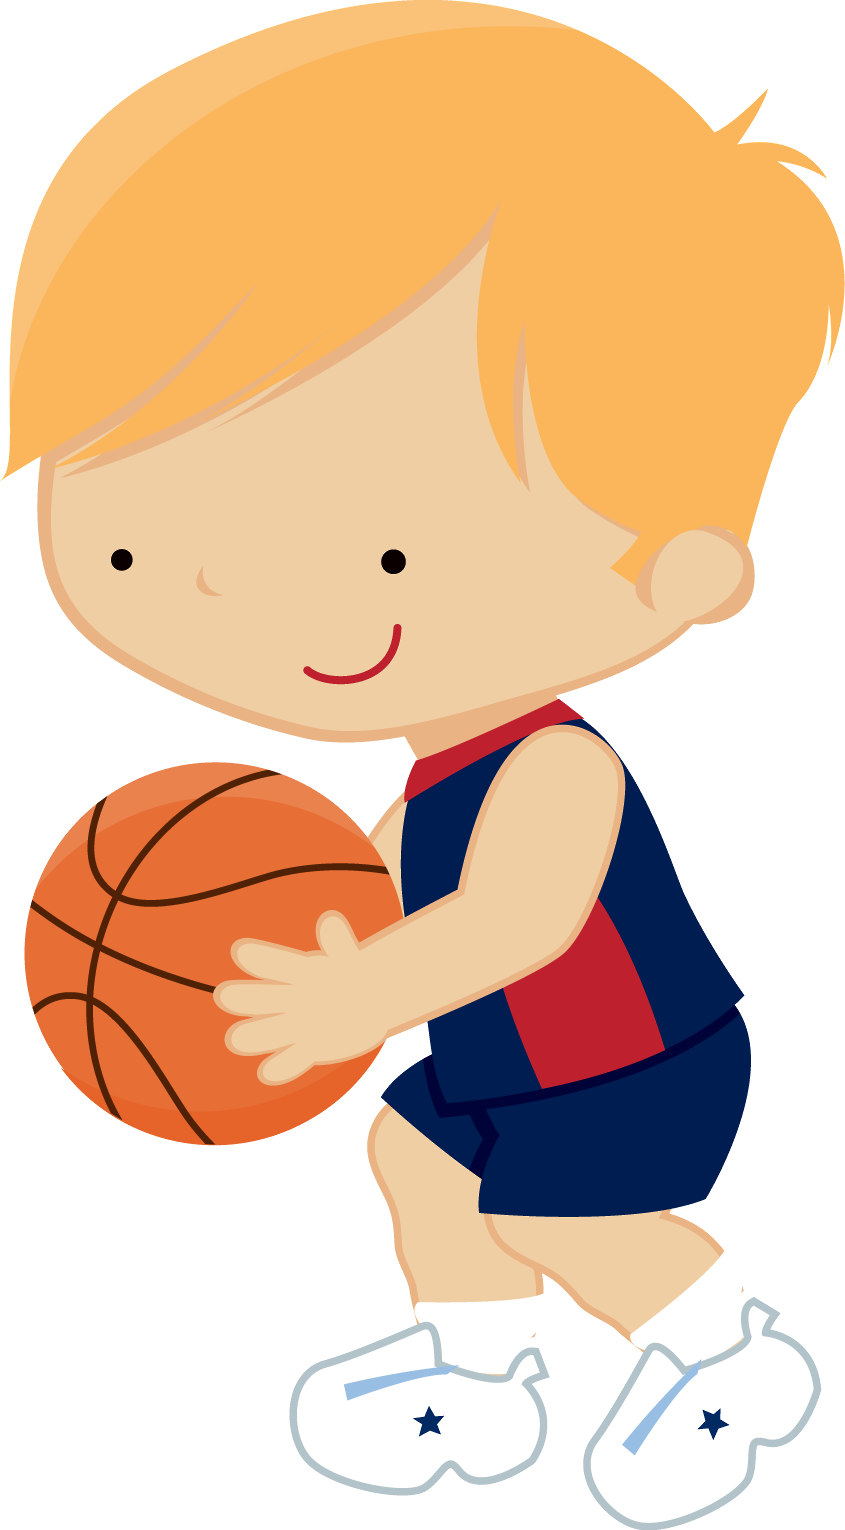 Throwing a book clipart png ZWD_White_Star - Minus | alreadyclipart - sports; | Pinterest | Clip ... png